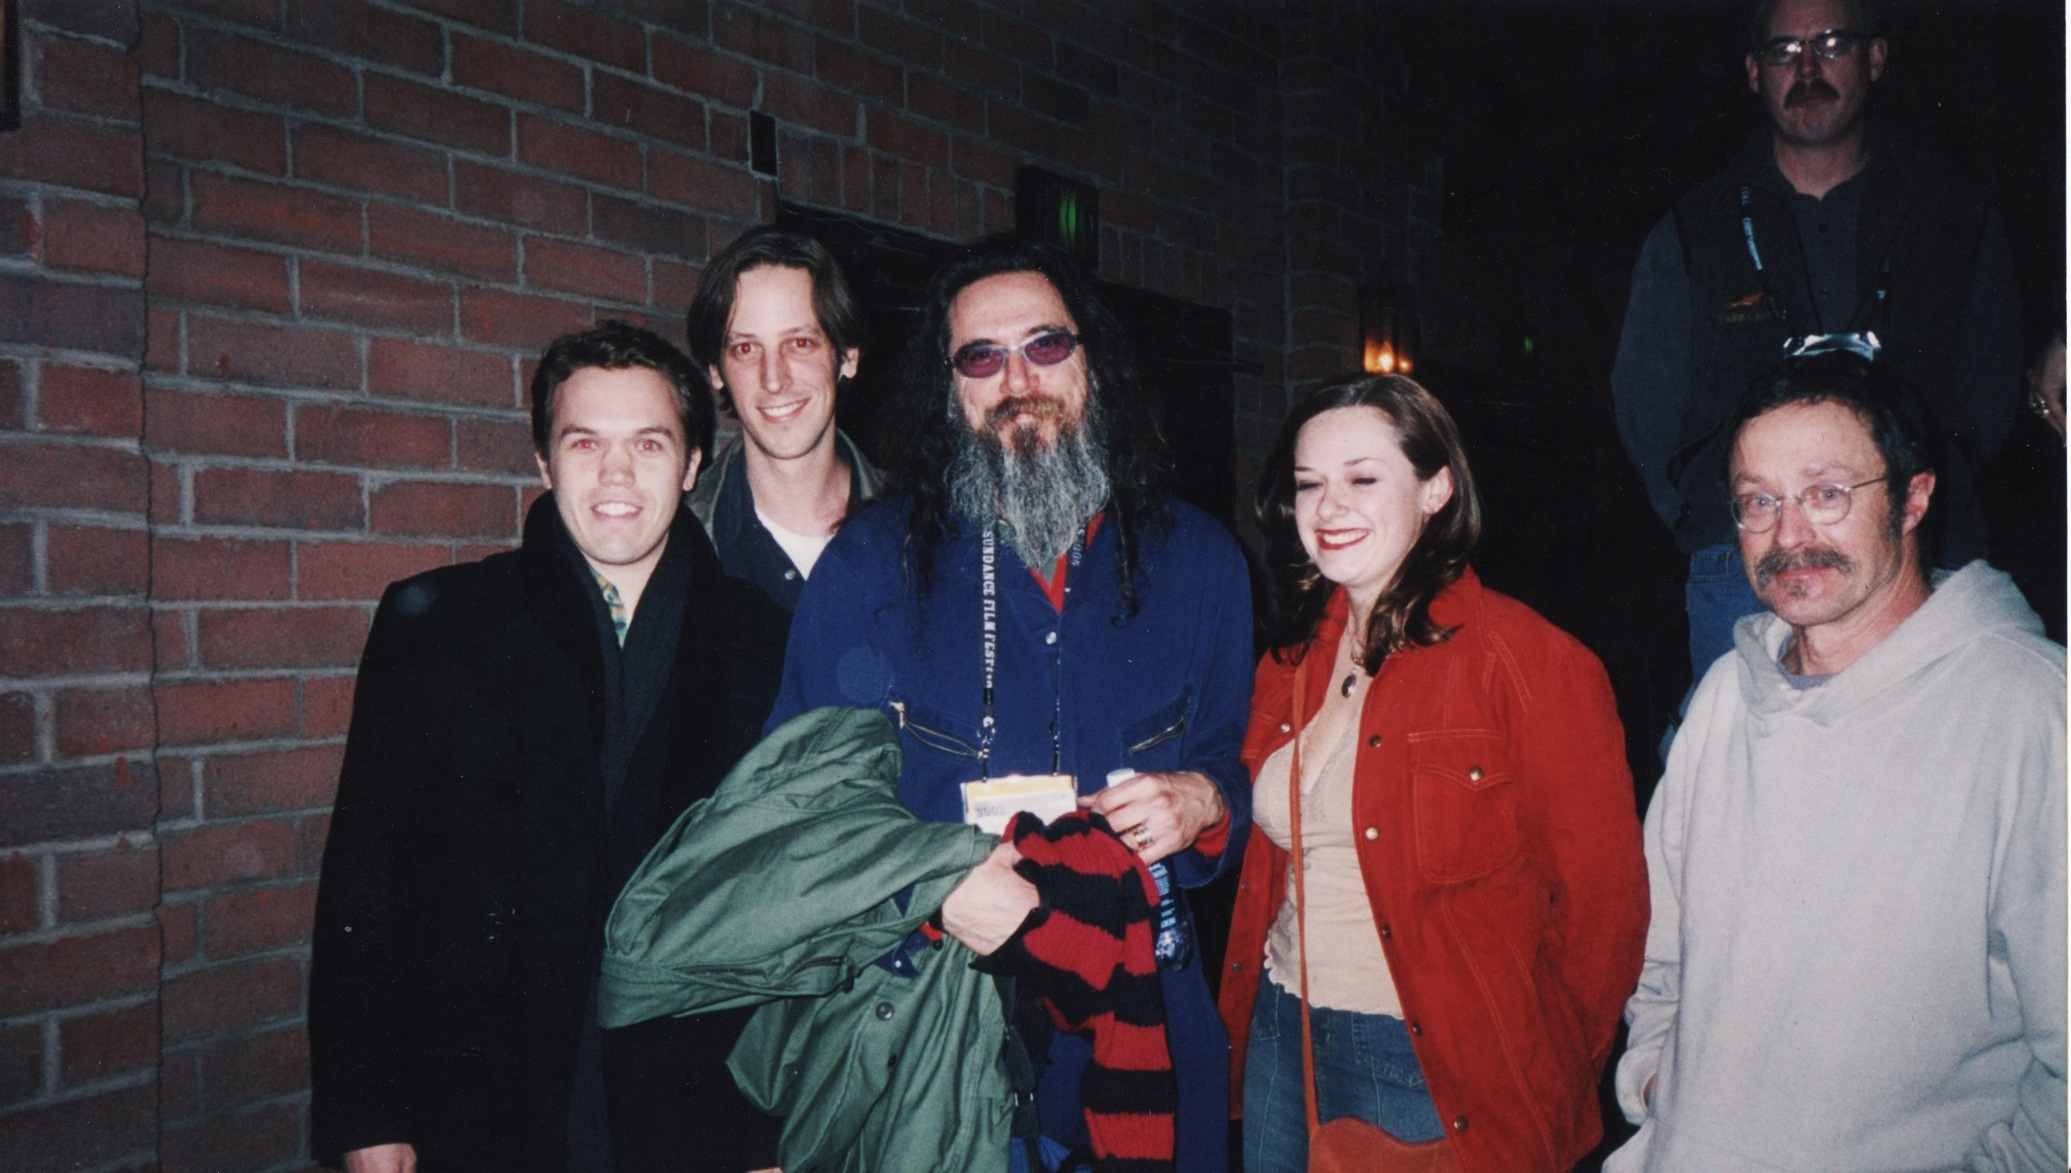 larry charles married